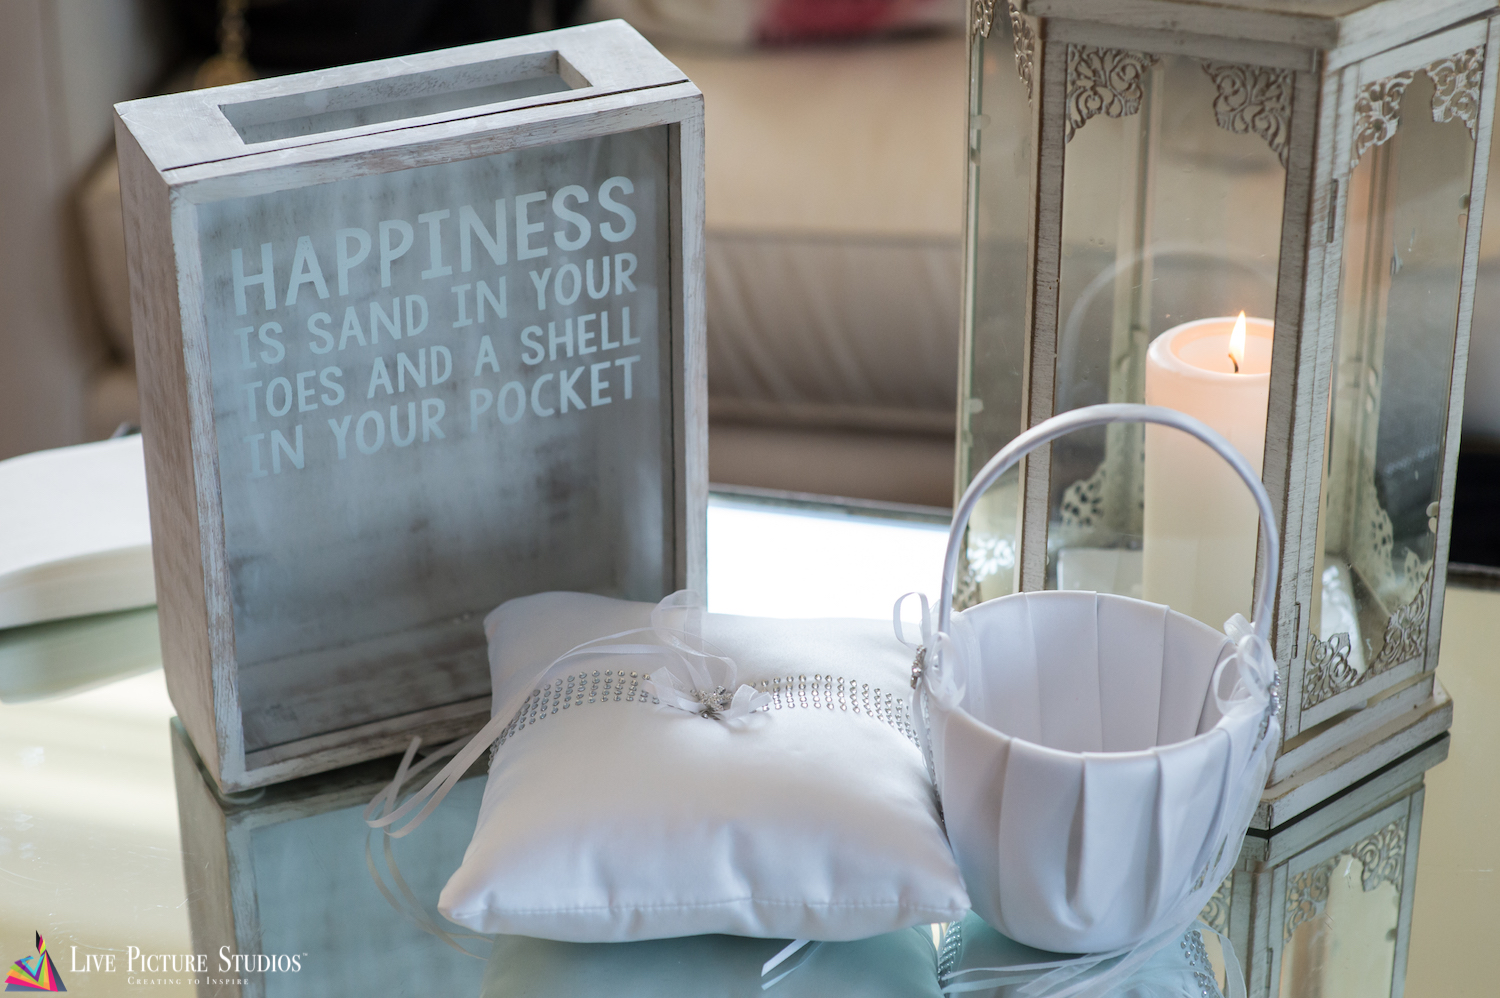 Vets Of Wedding Videography In NJ Share Some Beach Decor Ideas